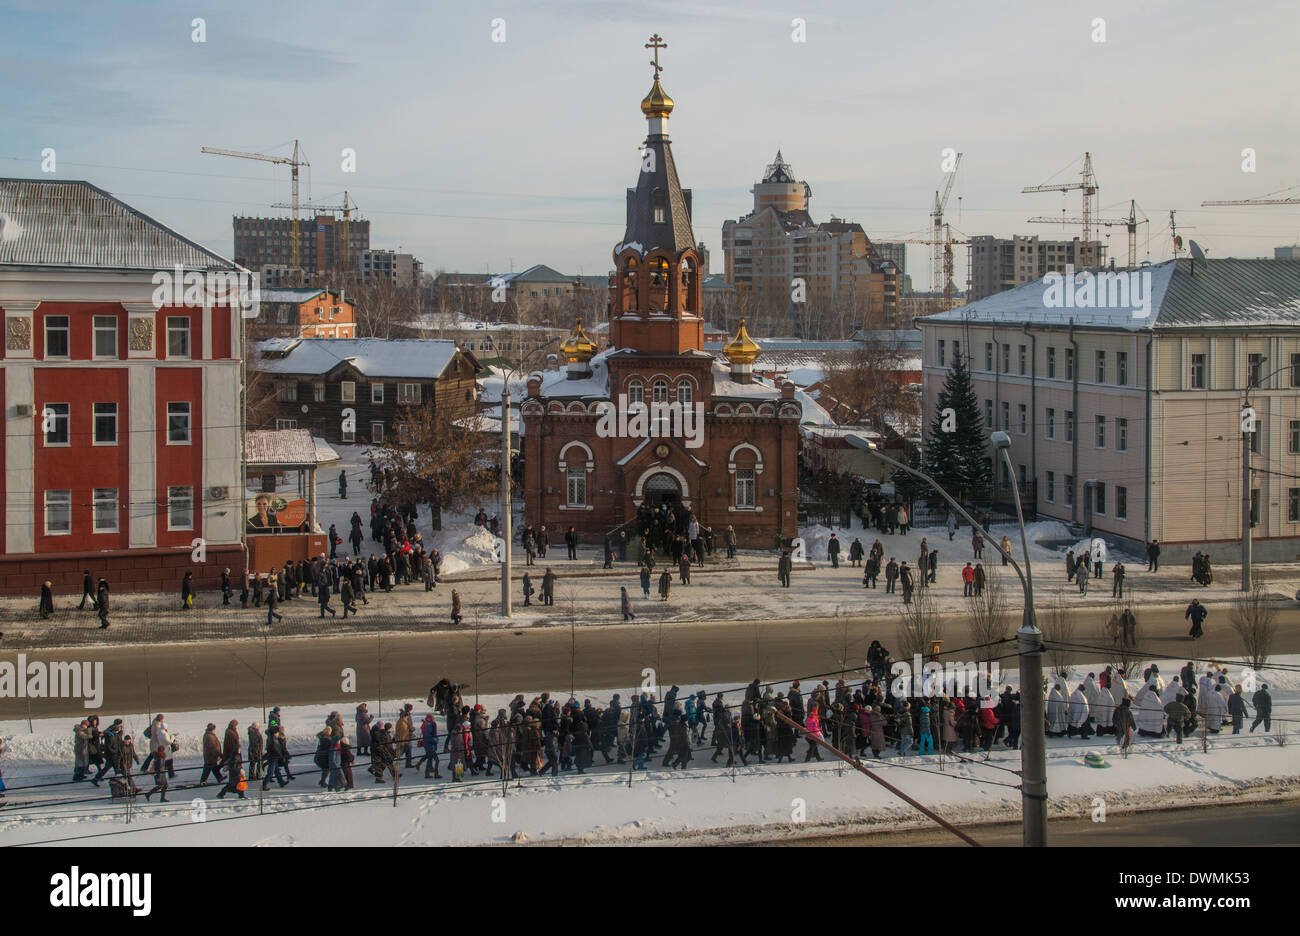 Religious procession on Lenins Prospekt. Epiphany Day. 01/19/2014  St. Nicholas Church Barnaul. Russia - Stock Image